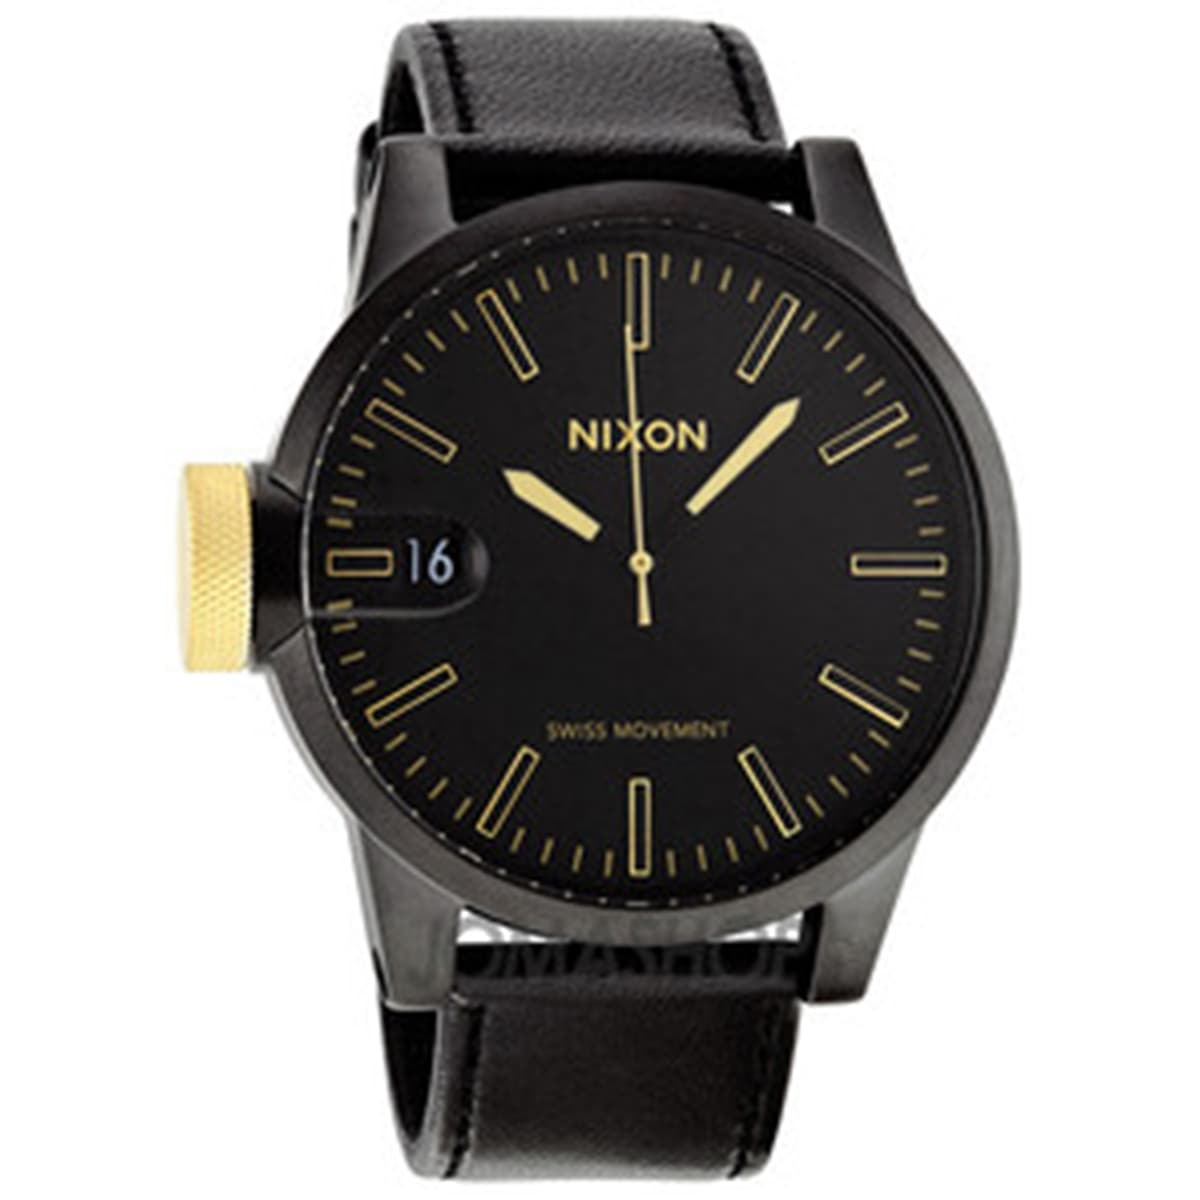 Nixon Men's Chronicle A1271041 Black Calf Skin Quartz Watch with Black Dial